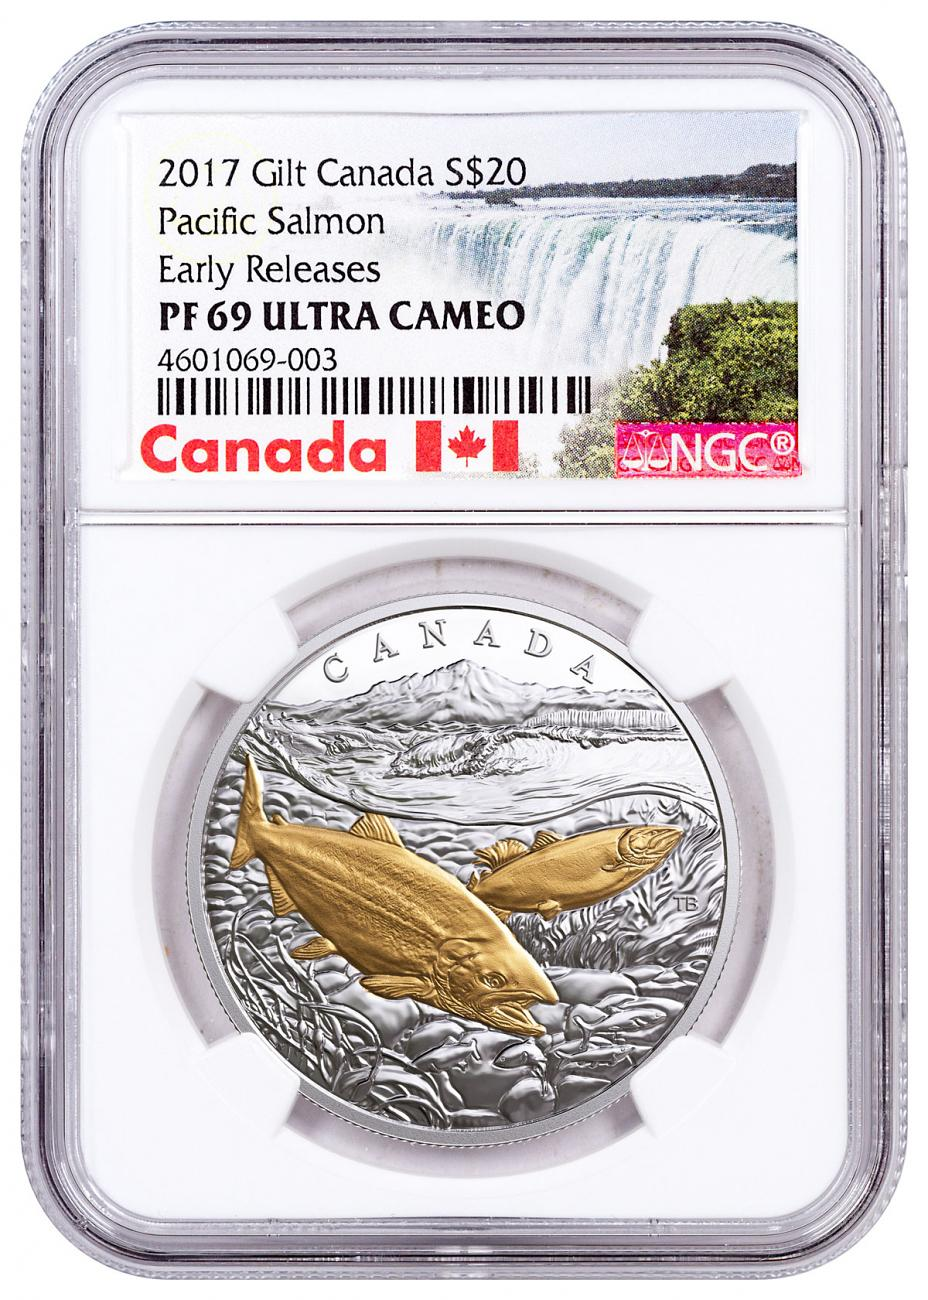 2017 Canada From Sea to Sea - Pacific Salmon 1 oz Silver Gilt Proof 20 Coin NGC PF69 UC ER Exclusive Canada Label